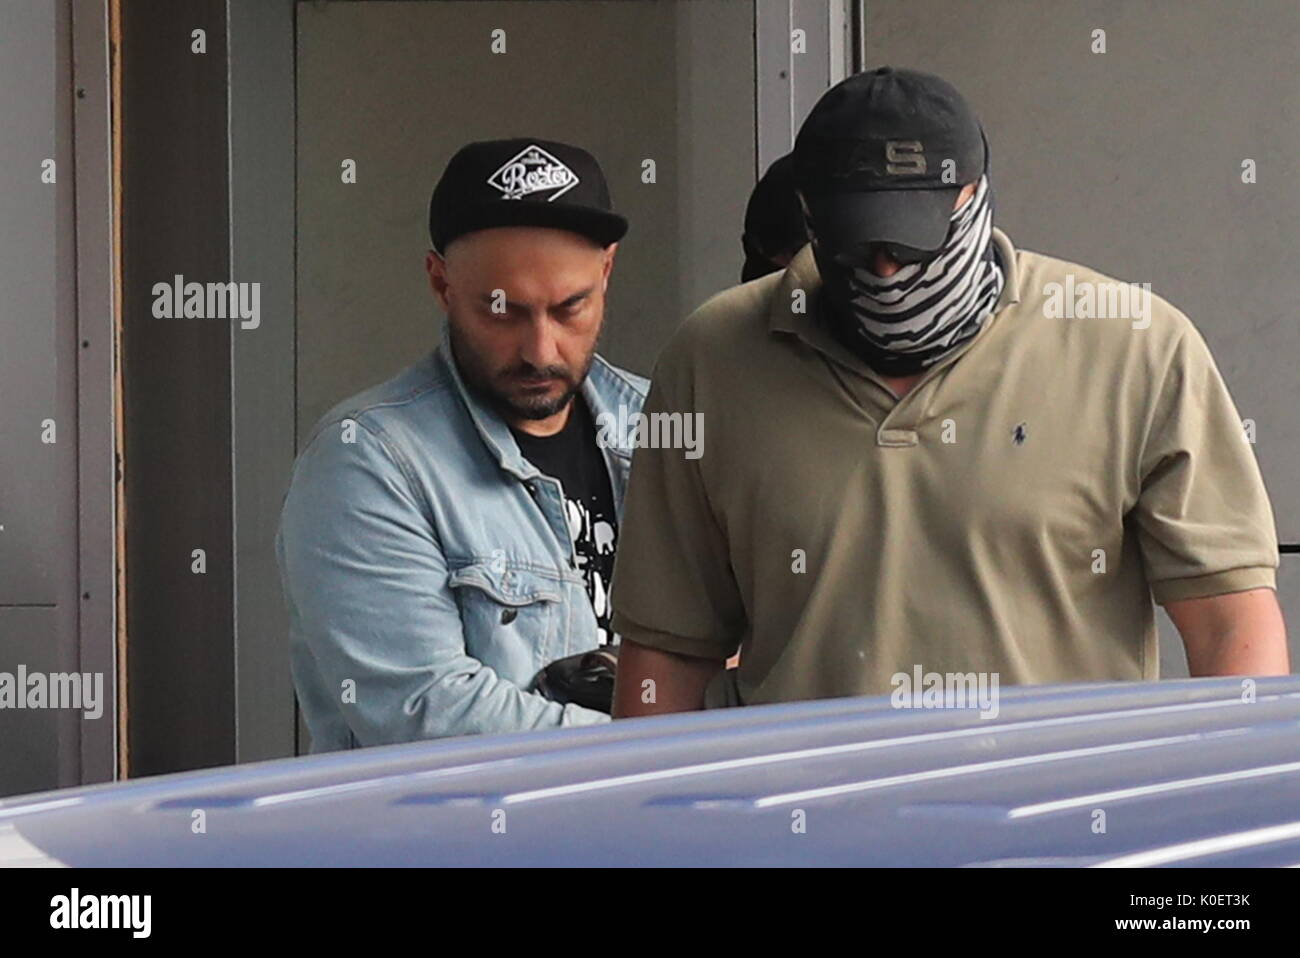 Moscow, Russia. 22nd Aug, 2017. Theatre and film director Kirill Serebrennikov (L) leaves the Russian Investigative Committee building. On August 22, 2017, Serebrennikov was detained on fraud charges. He is accused of embezzling 68 million roubles ($1.1 million) of state funding allocated for the Platforma theatre project between 2011 and 2014. Credit: Vyacheslav Prokofyev/TASS/Alamy Live News - Stock Image